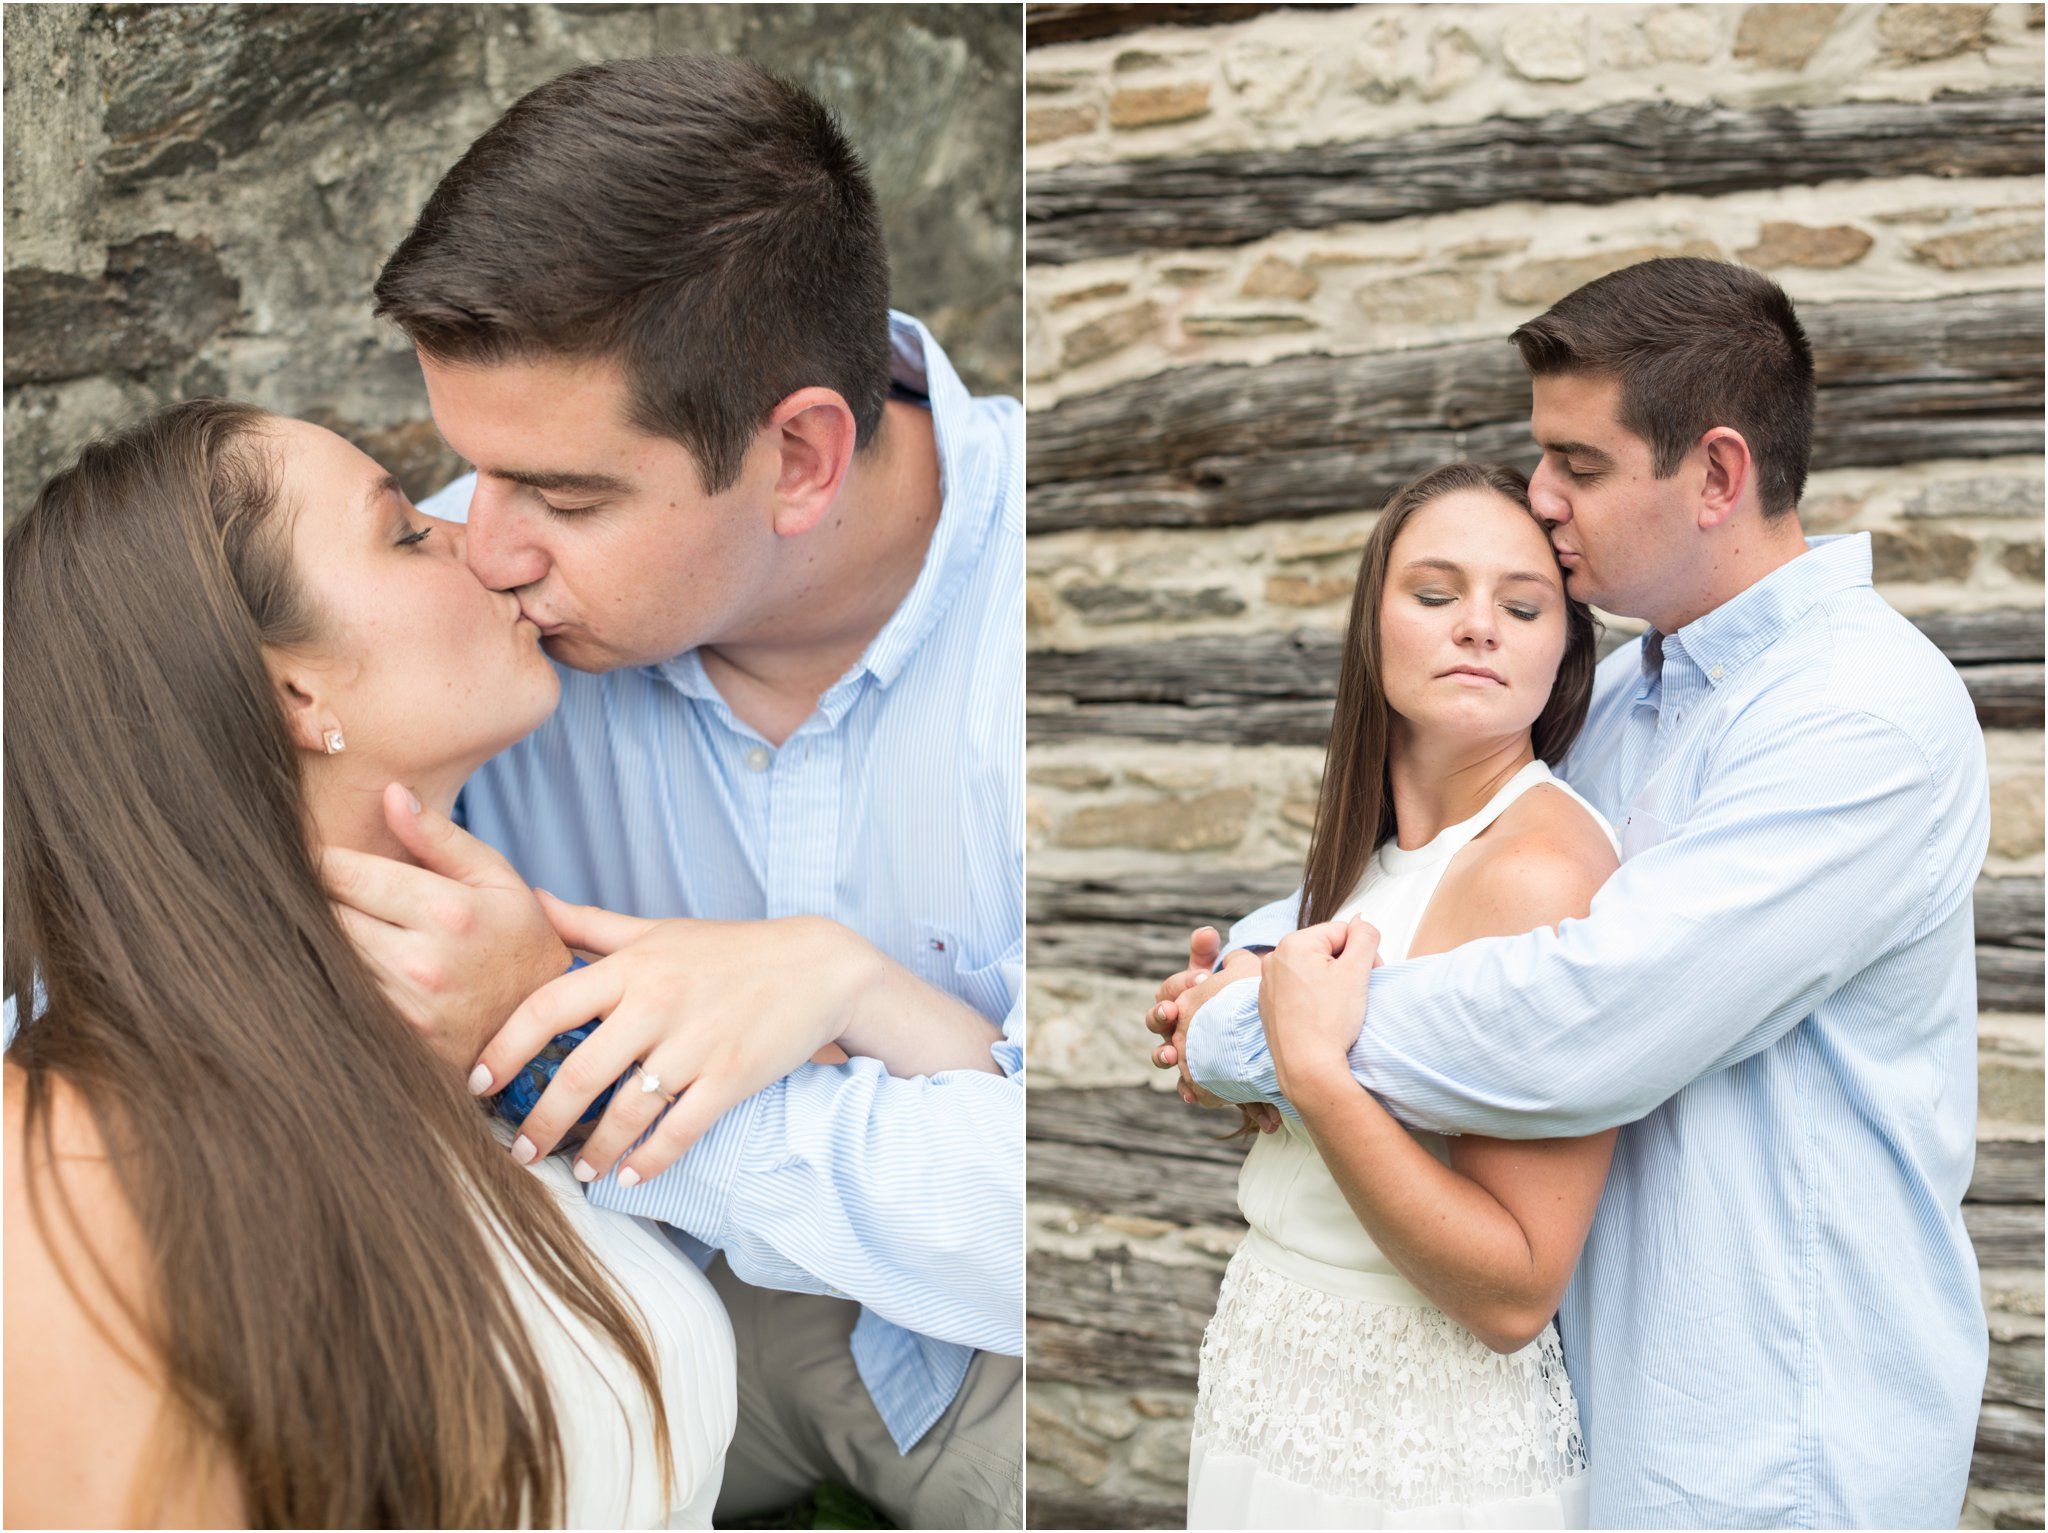 Cromwell-Valley-Park-Engagement-Chelsea-Blanch-Photography-7